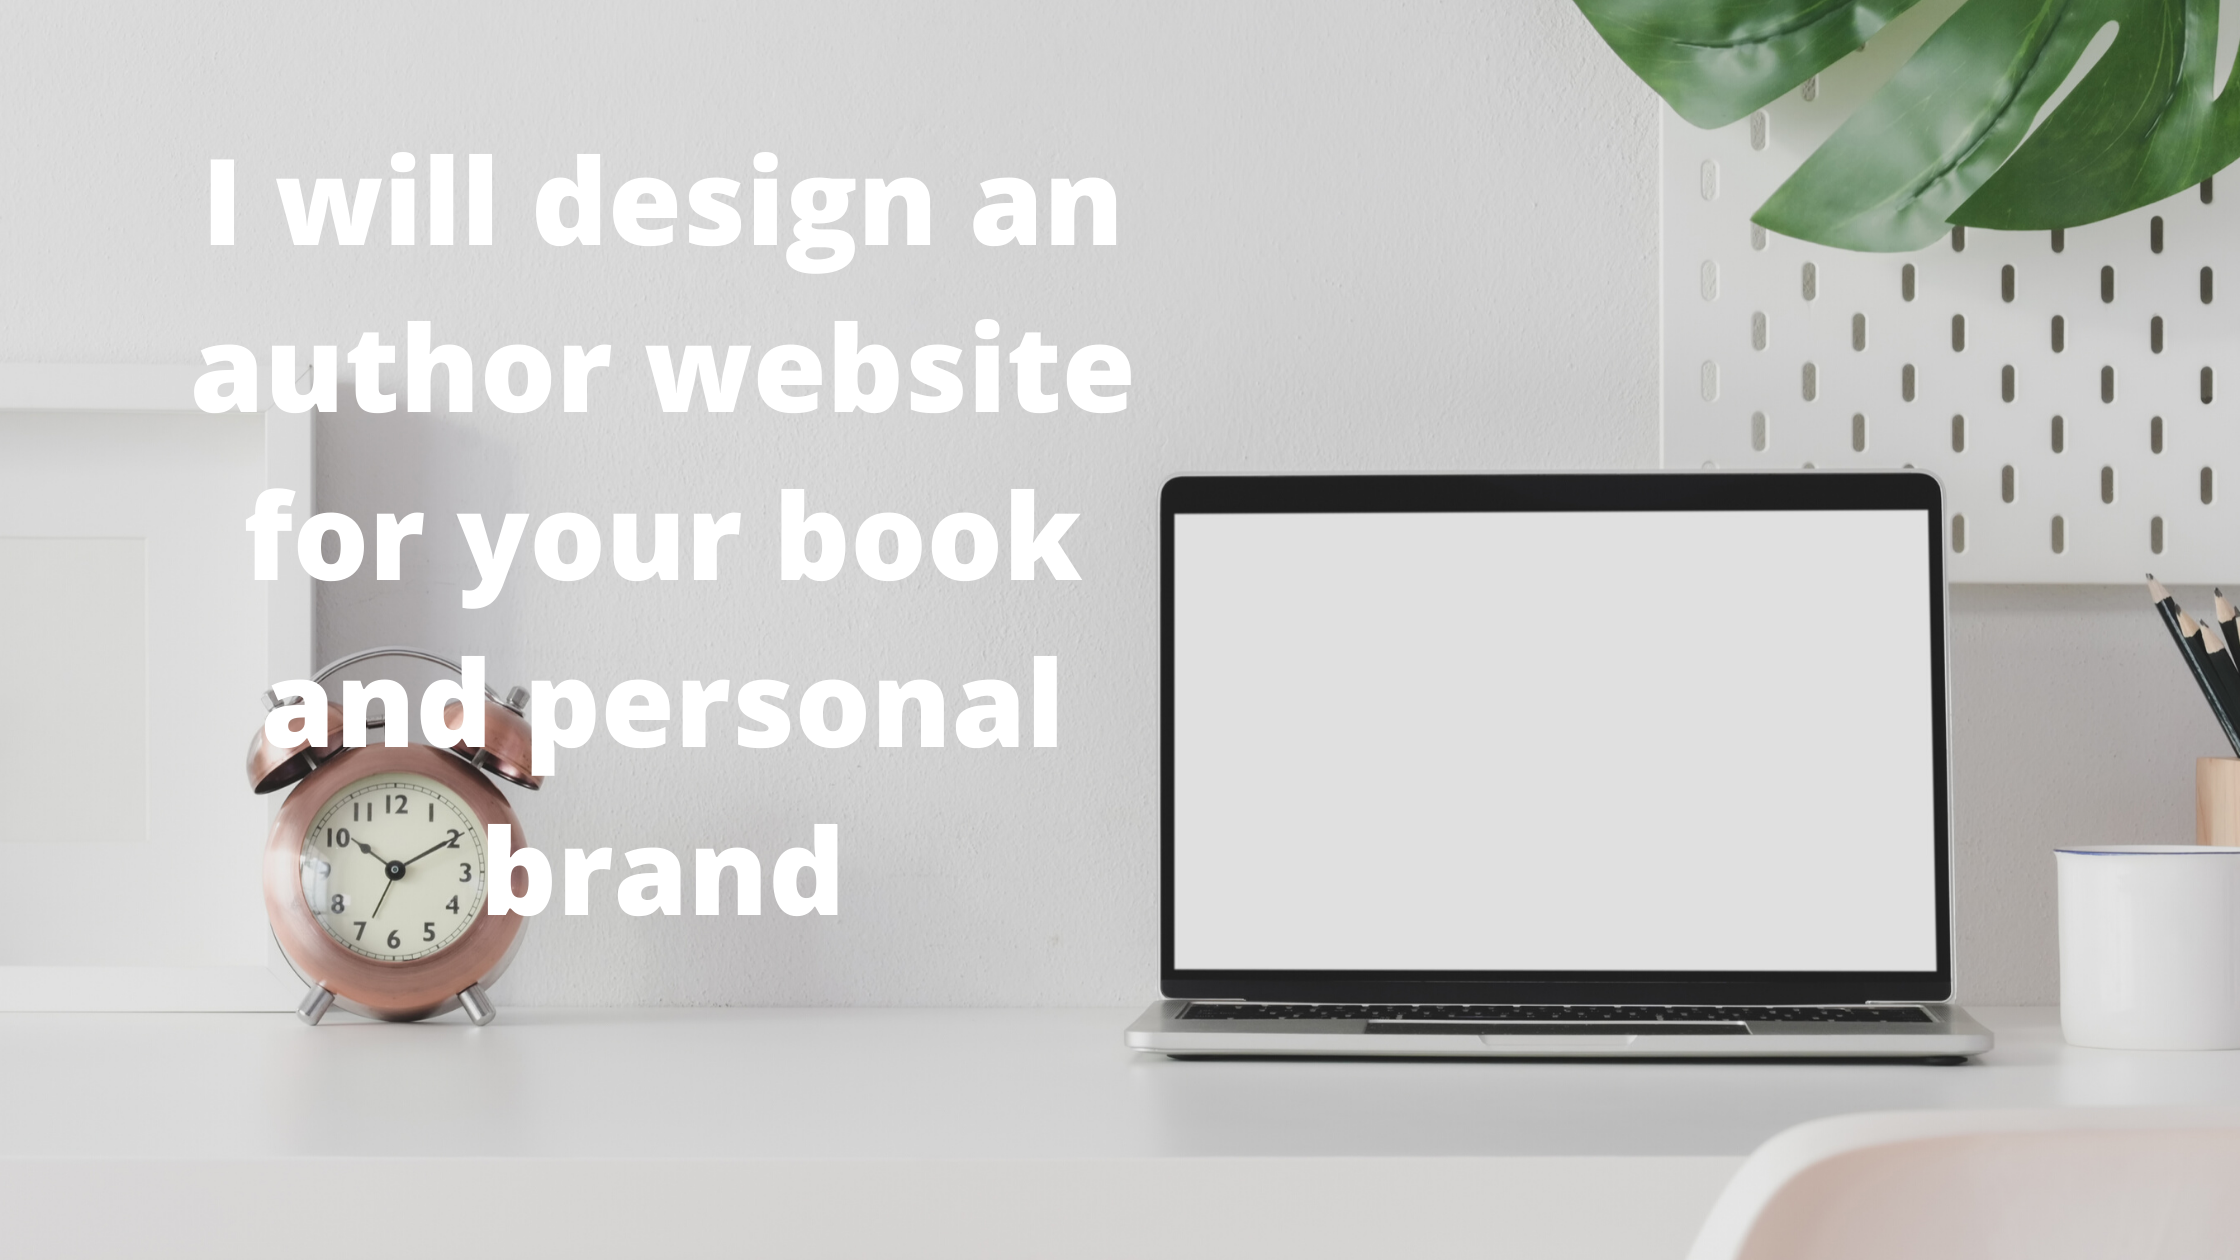 I will design an author website for your book and personal brand